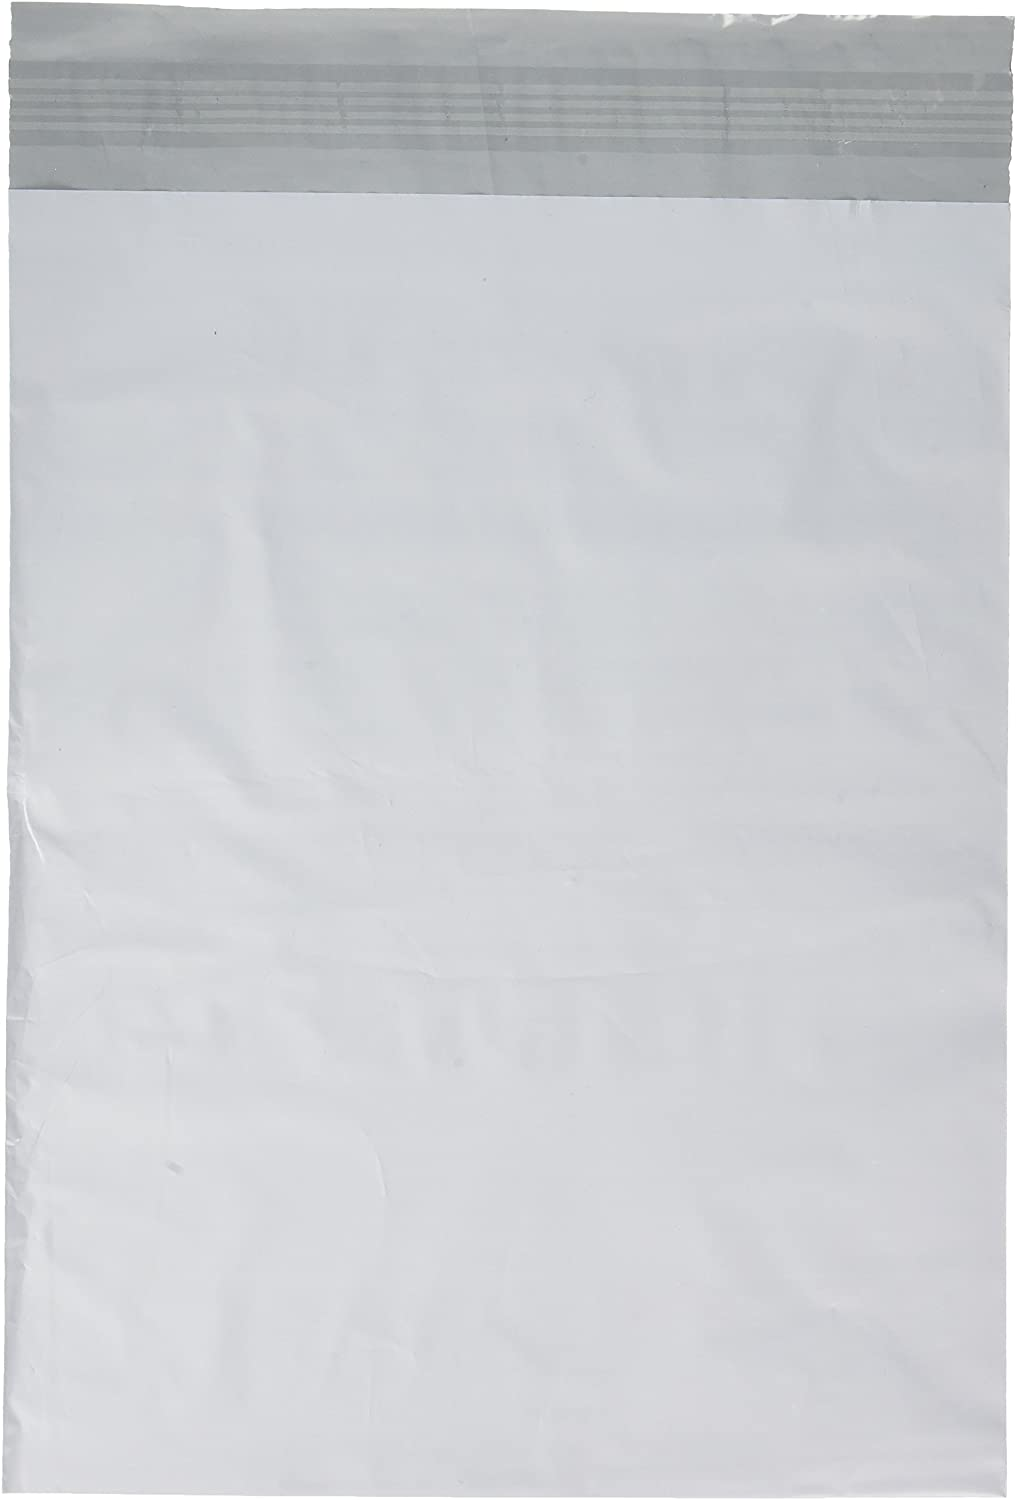 20 EcoSwift 14 x 16 White Large Poly Mailers Size #6s Self Sealing Envelopes Plastic Shipping Mailing Bags 14x16